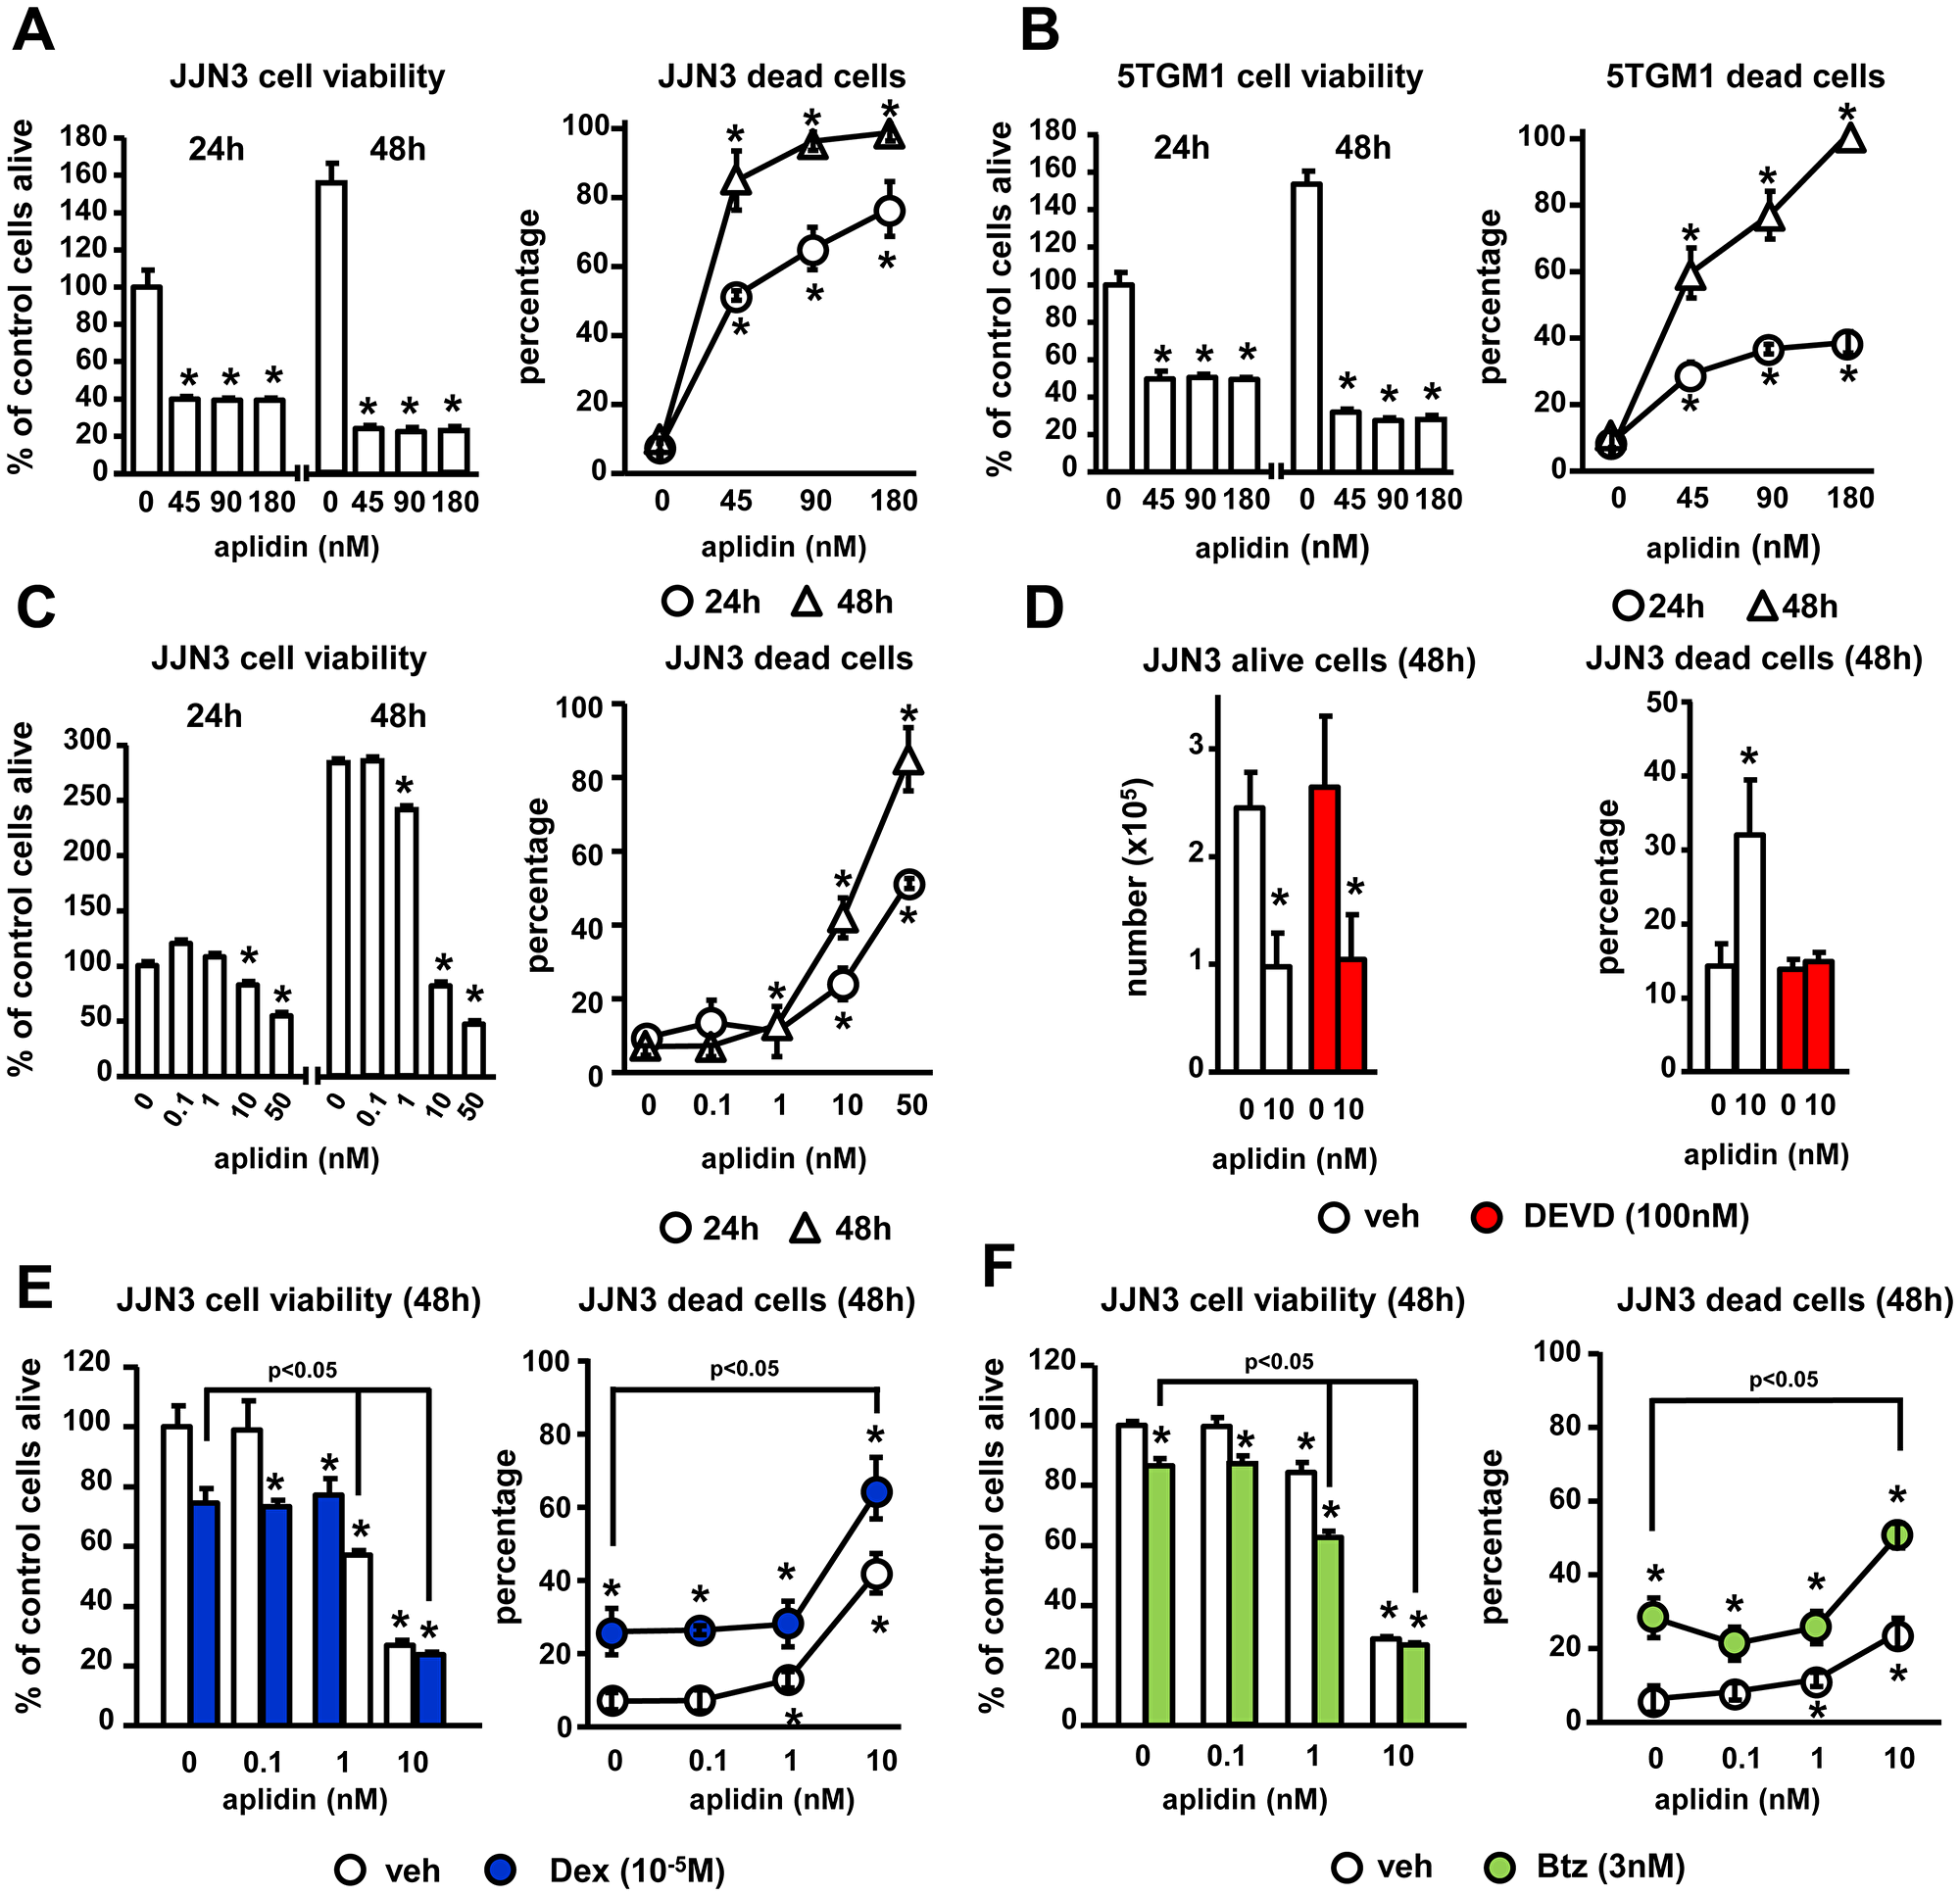 The inhibition of MM cell viability by Aplidin is enhanced by Dex and Btz.